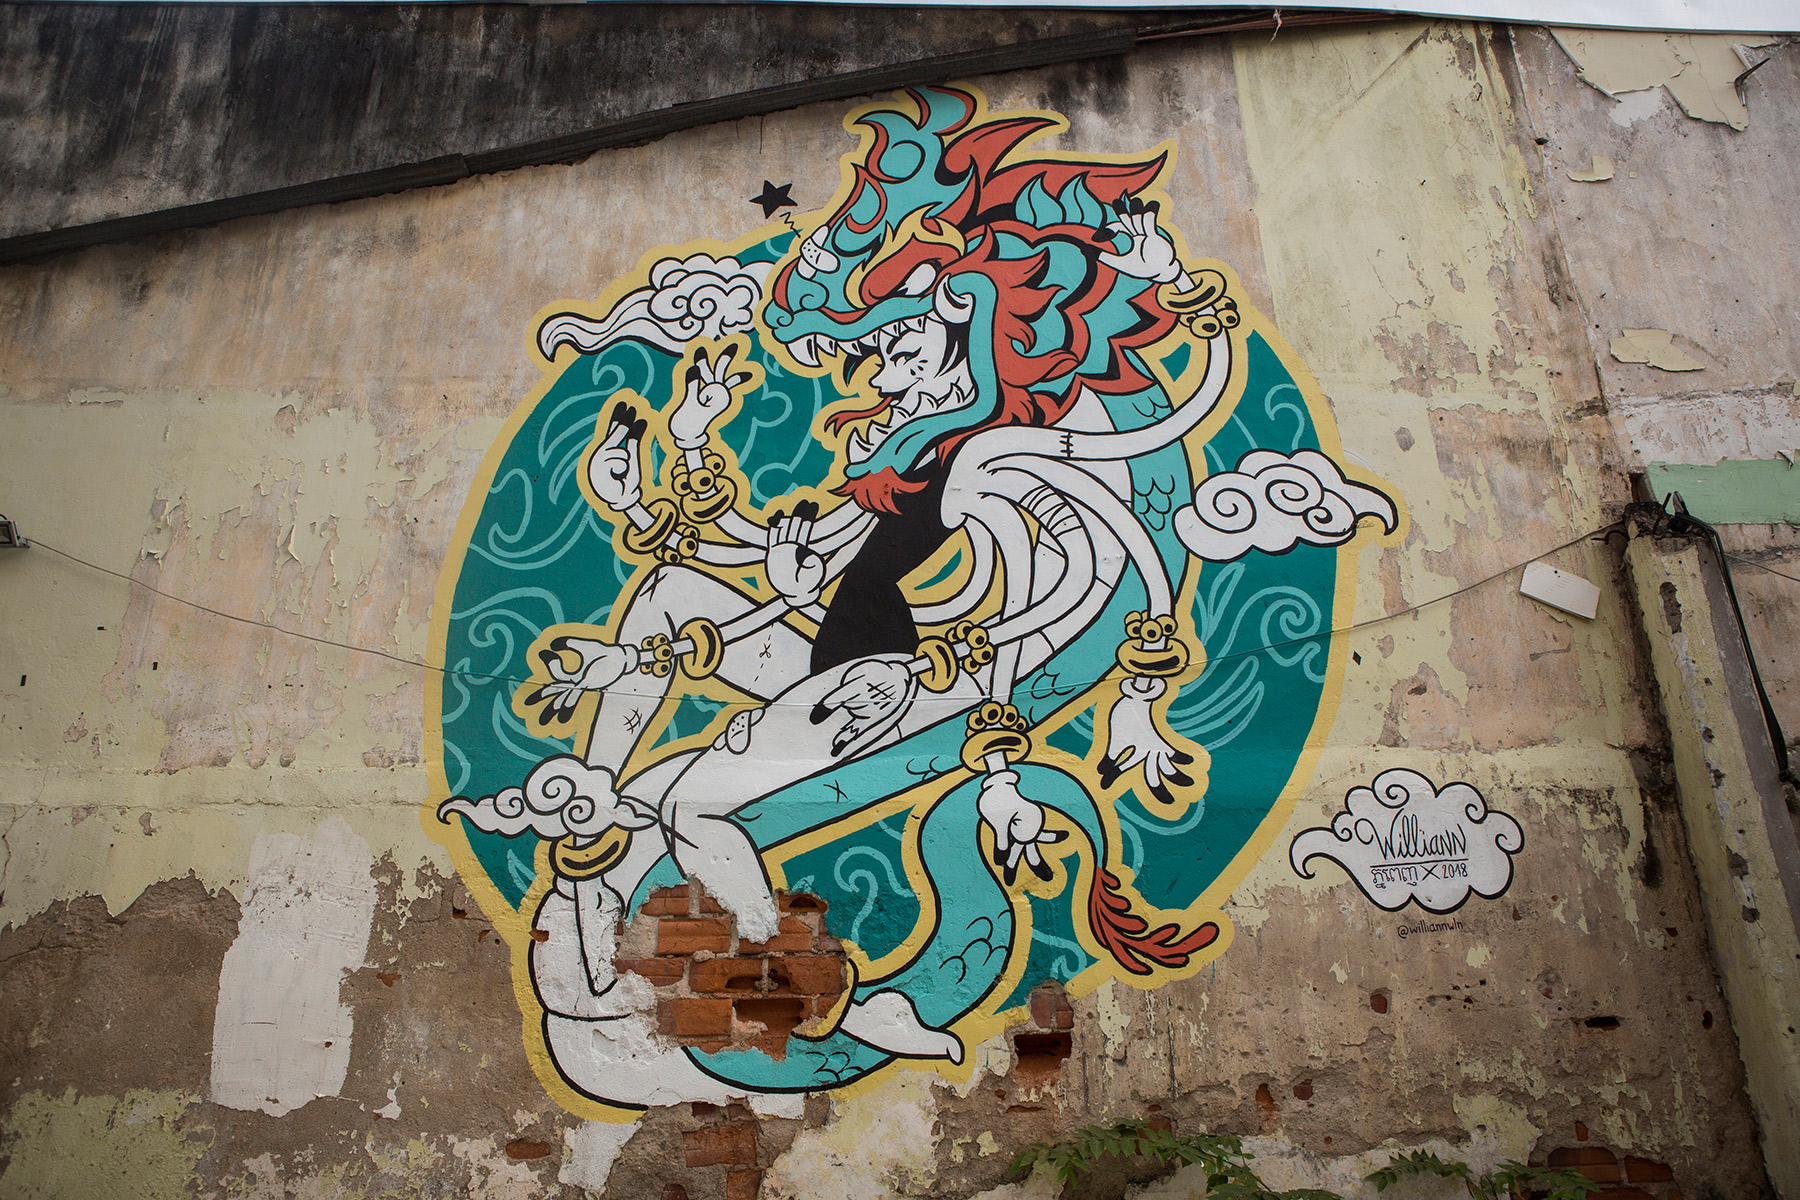 Williann-Cambodia-Urban-Art-Festival